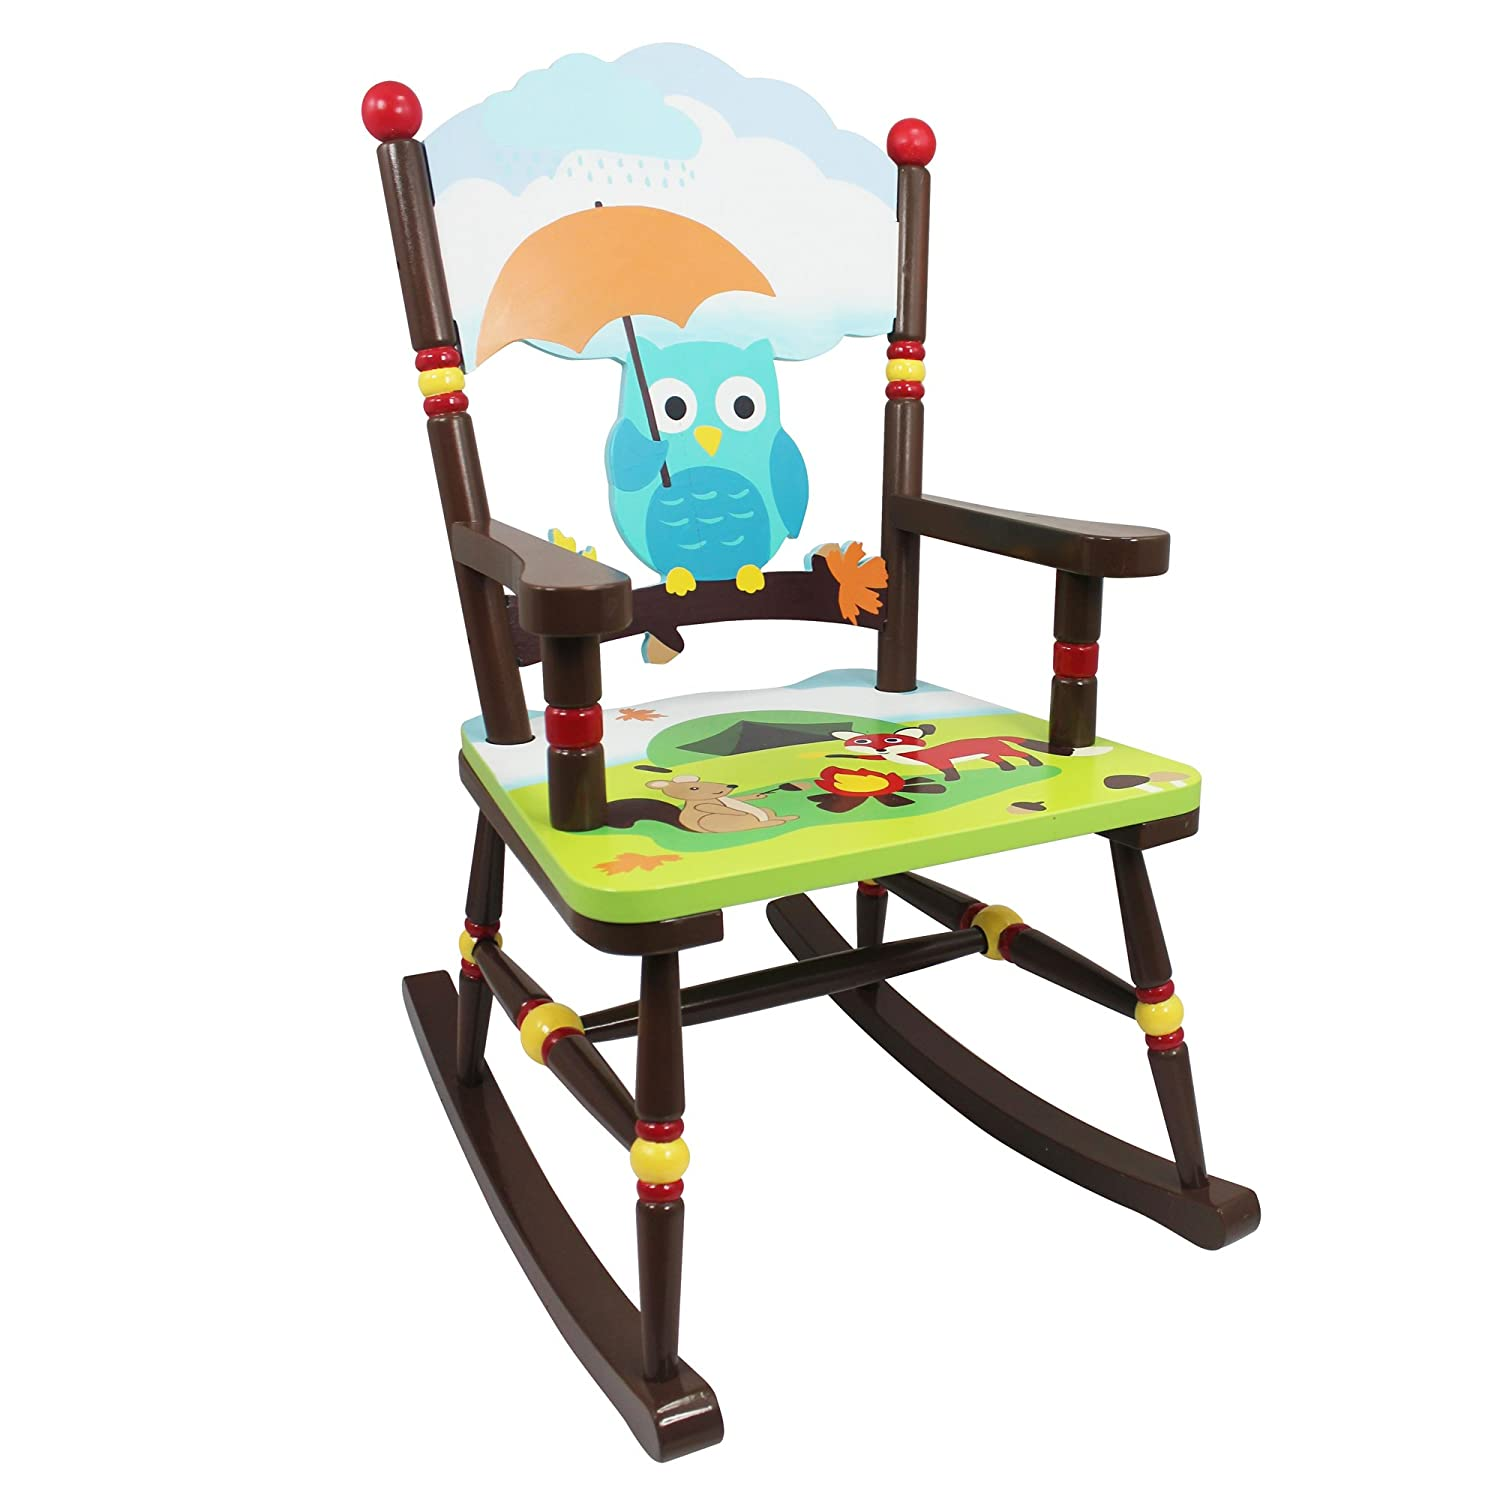 Fantasy Fields Enchanted Woodland Thematic Kids Wooden Rocking Chair |  Imagination Inspiring Hand Crafted U0026 Hand